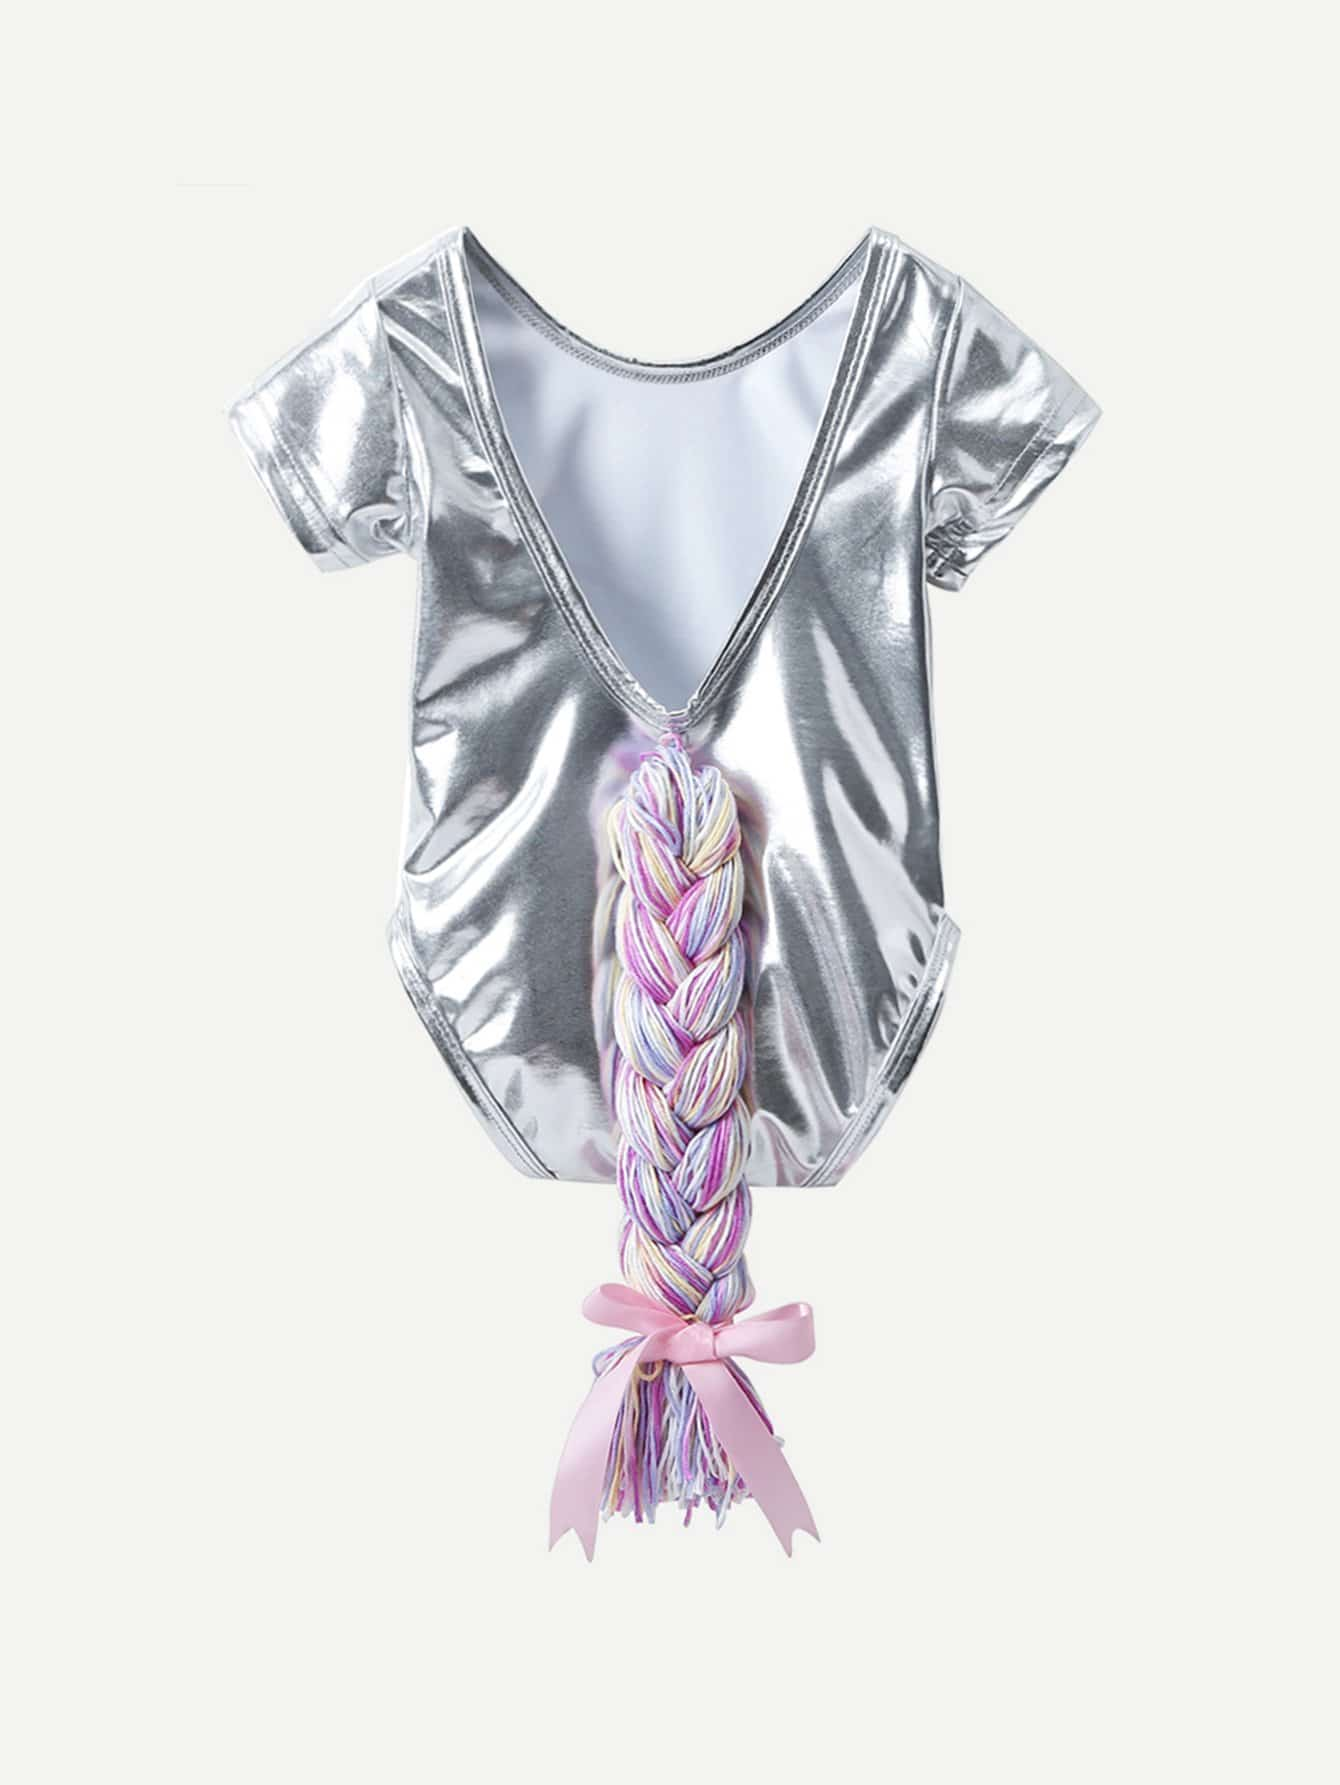 Girls Baby Cross Braided Detail Romper newborn baby boy girl infant warm cotton outfit jumpsuit romper bodysuit clothes